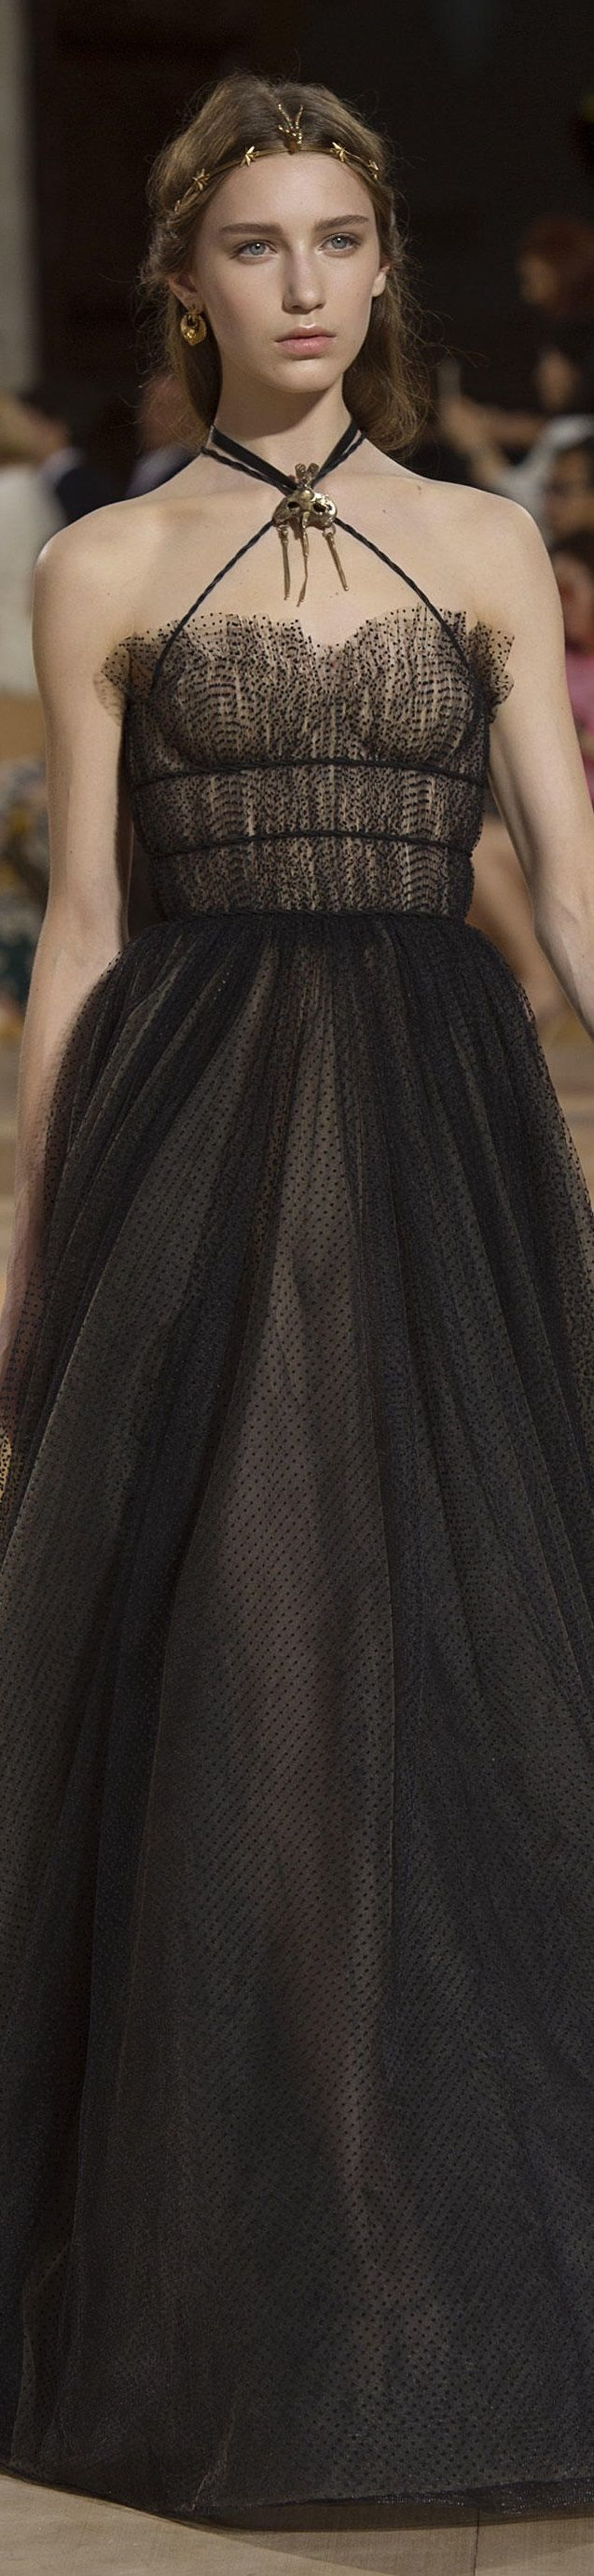 Valentino Fall/Winter 2015-2016 Haute Couture MASTERPIECE! Black vintage, creative inspiration...